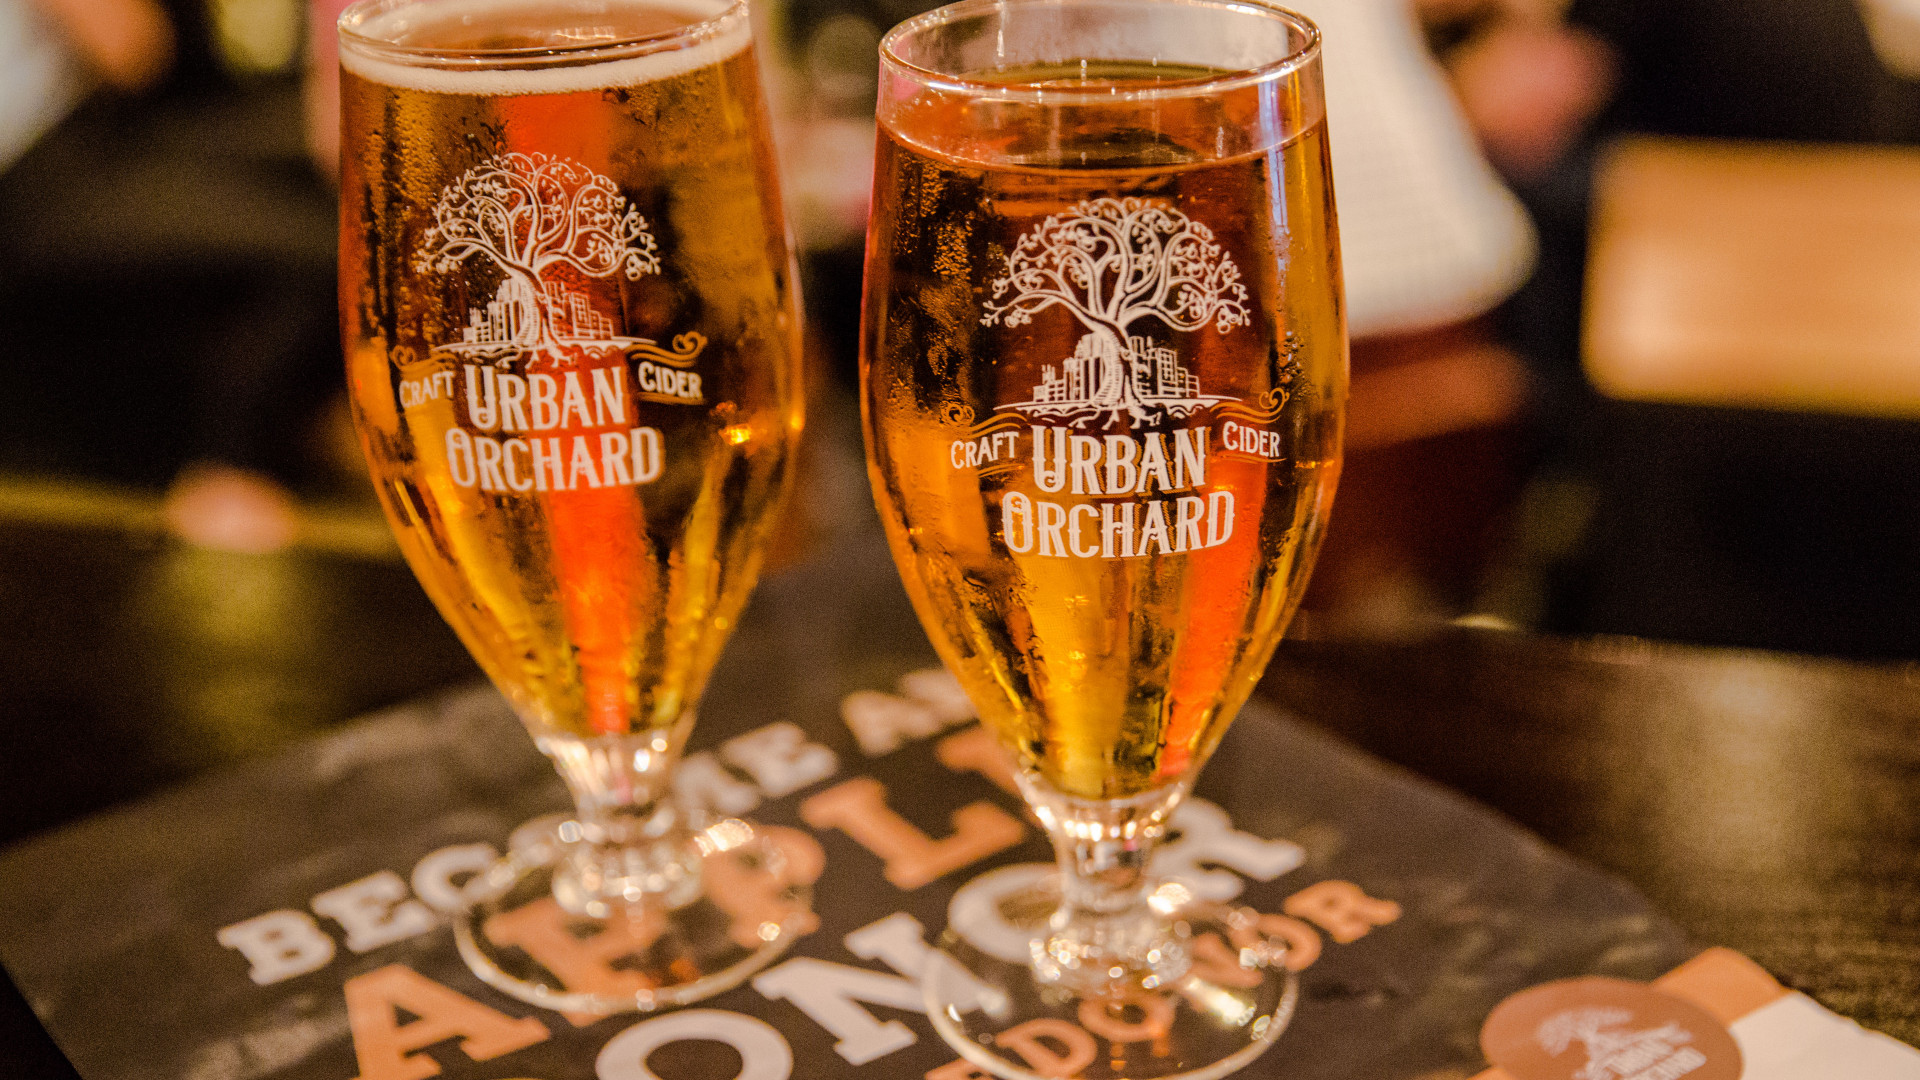 New-school cider: Urban Orchard